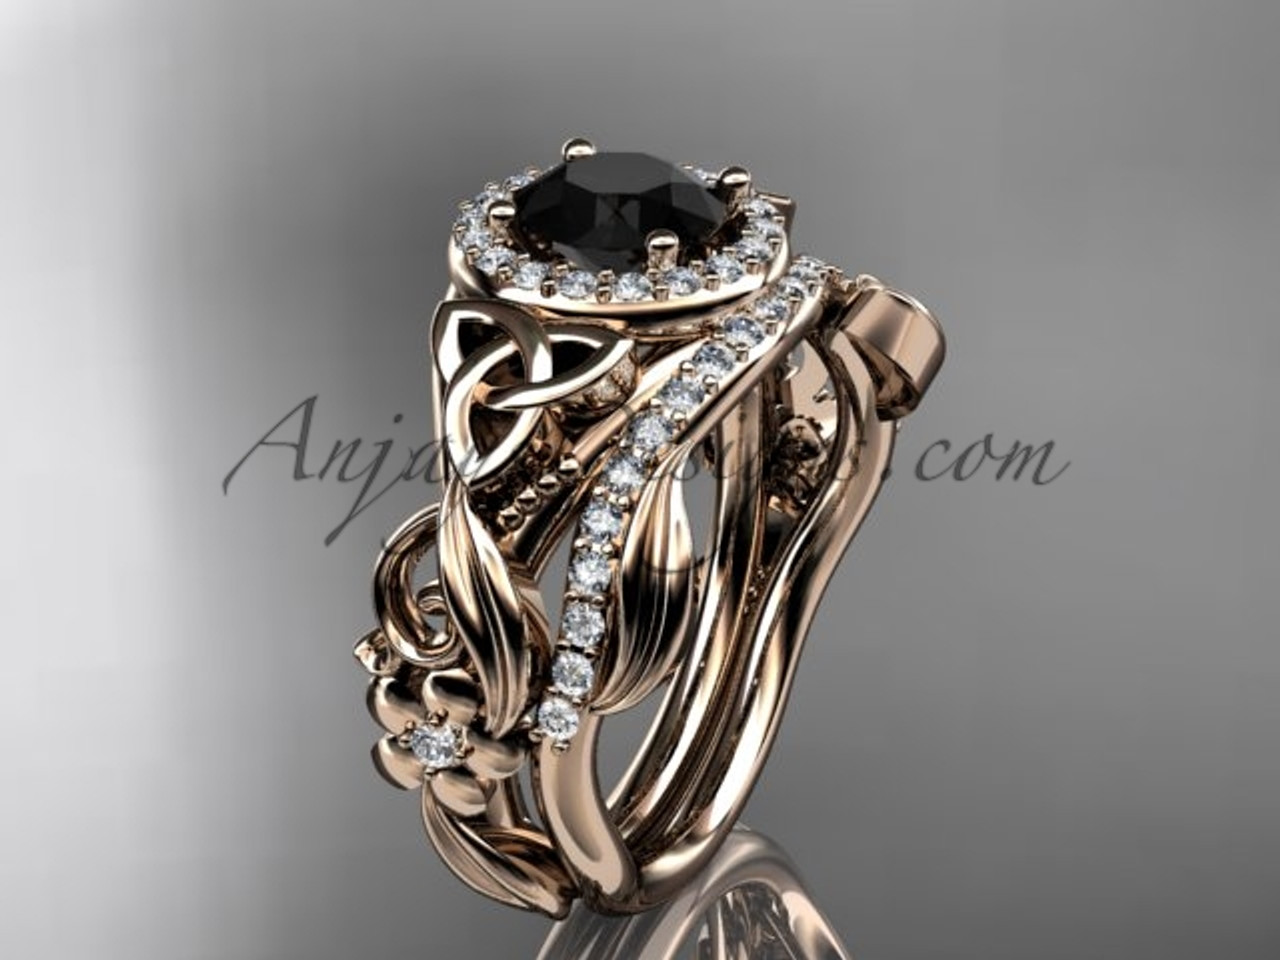 black diamond celtic wedding ring sets rose gold ring ct7300s - Celtic Wedding Ring Sets